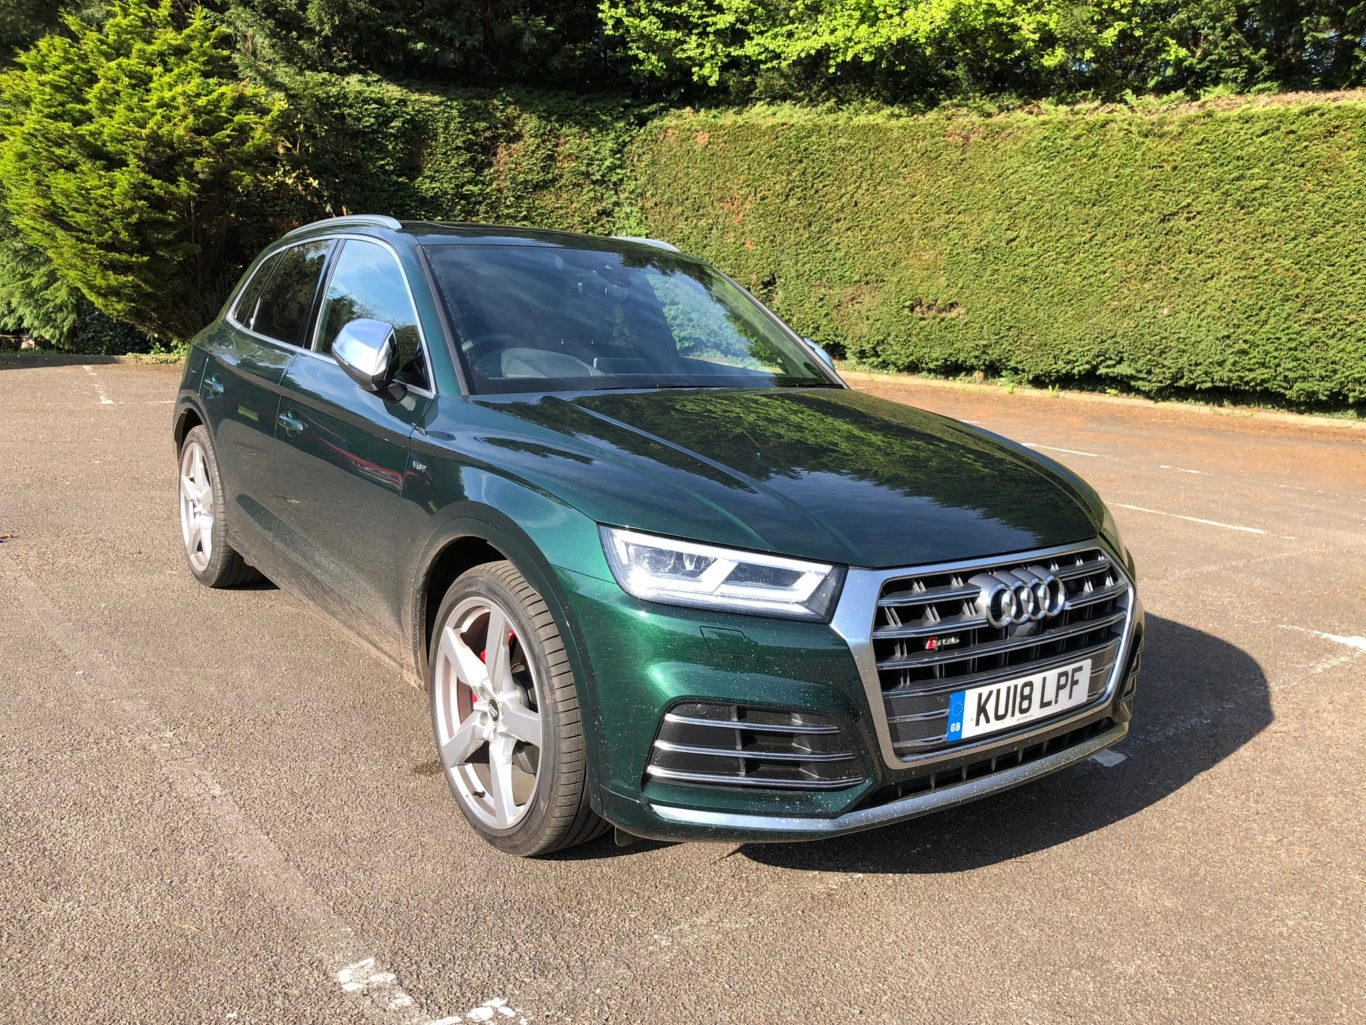 'Our' SQ5 is finished in a striking green metallic paint